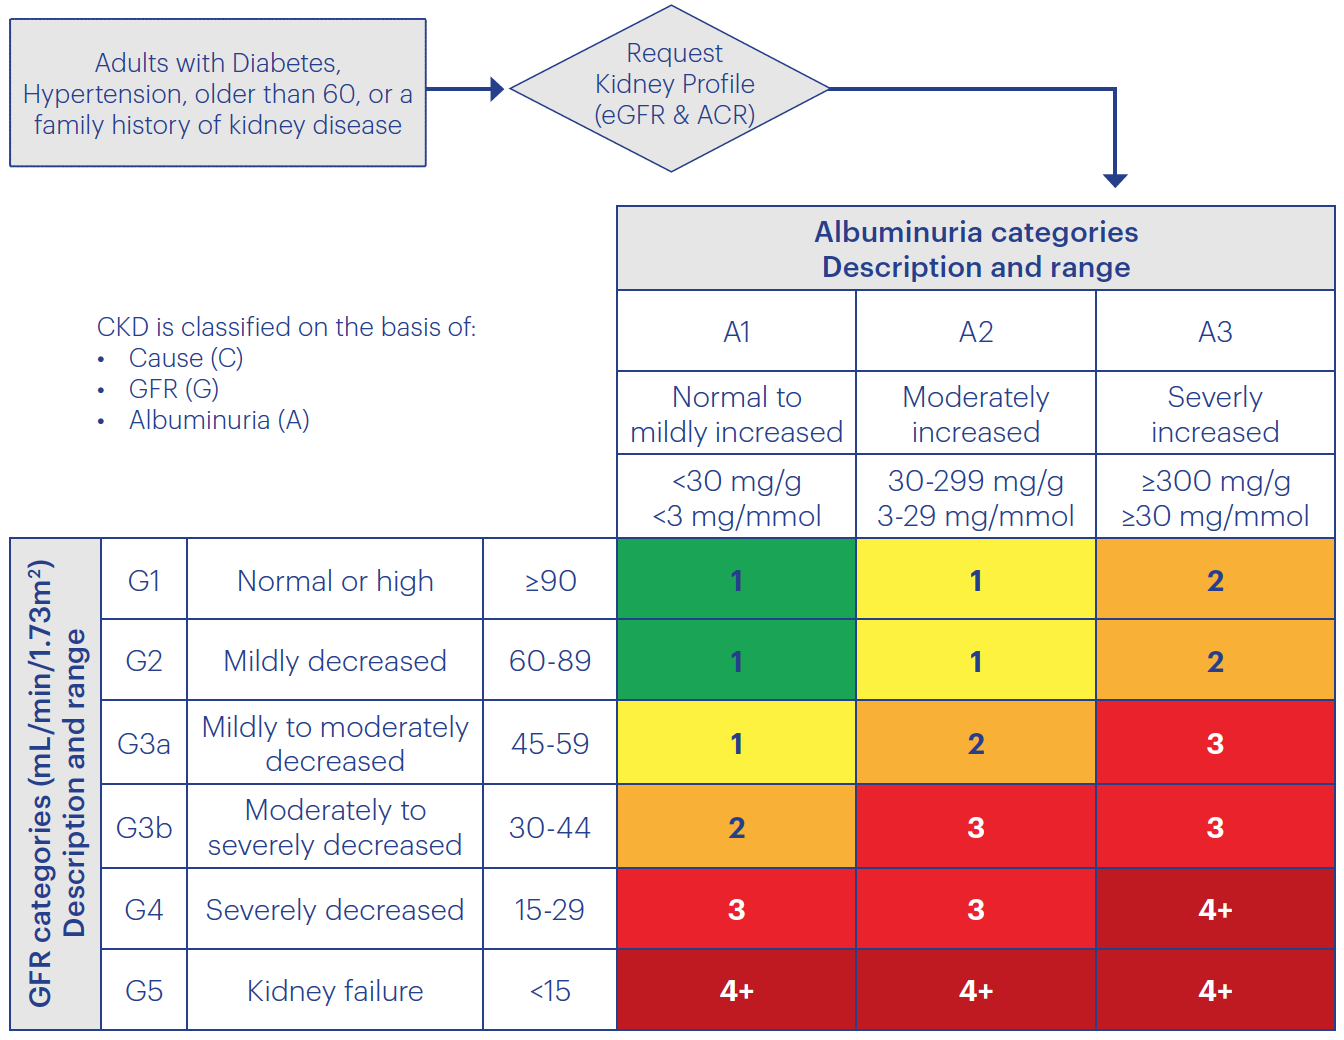 Risk of Chronic Kidney Disease Progression and Frequency of Assessment